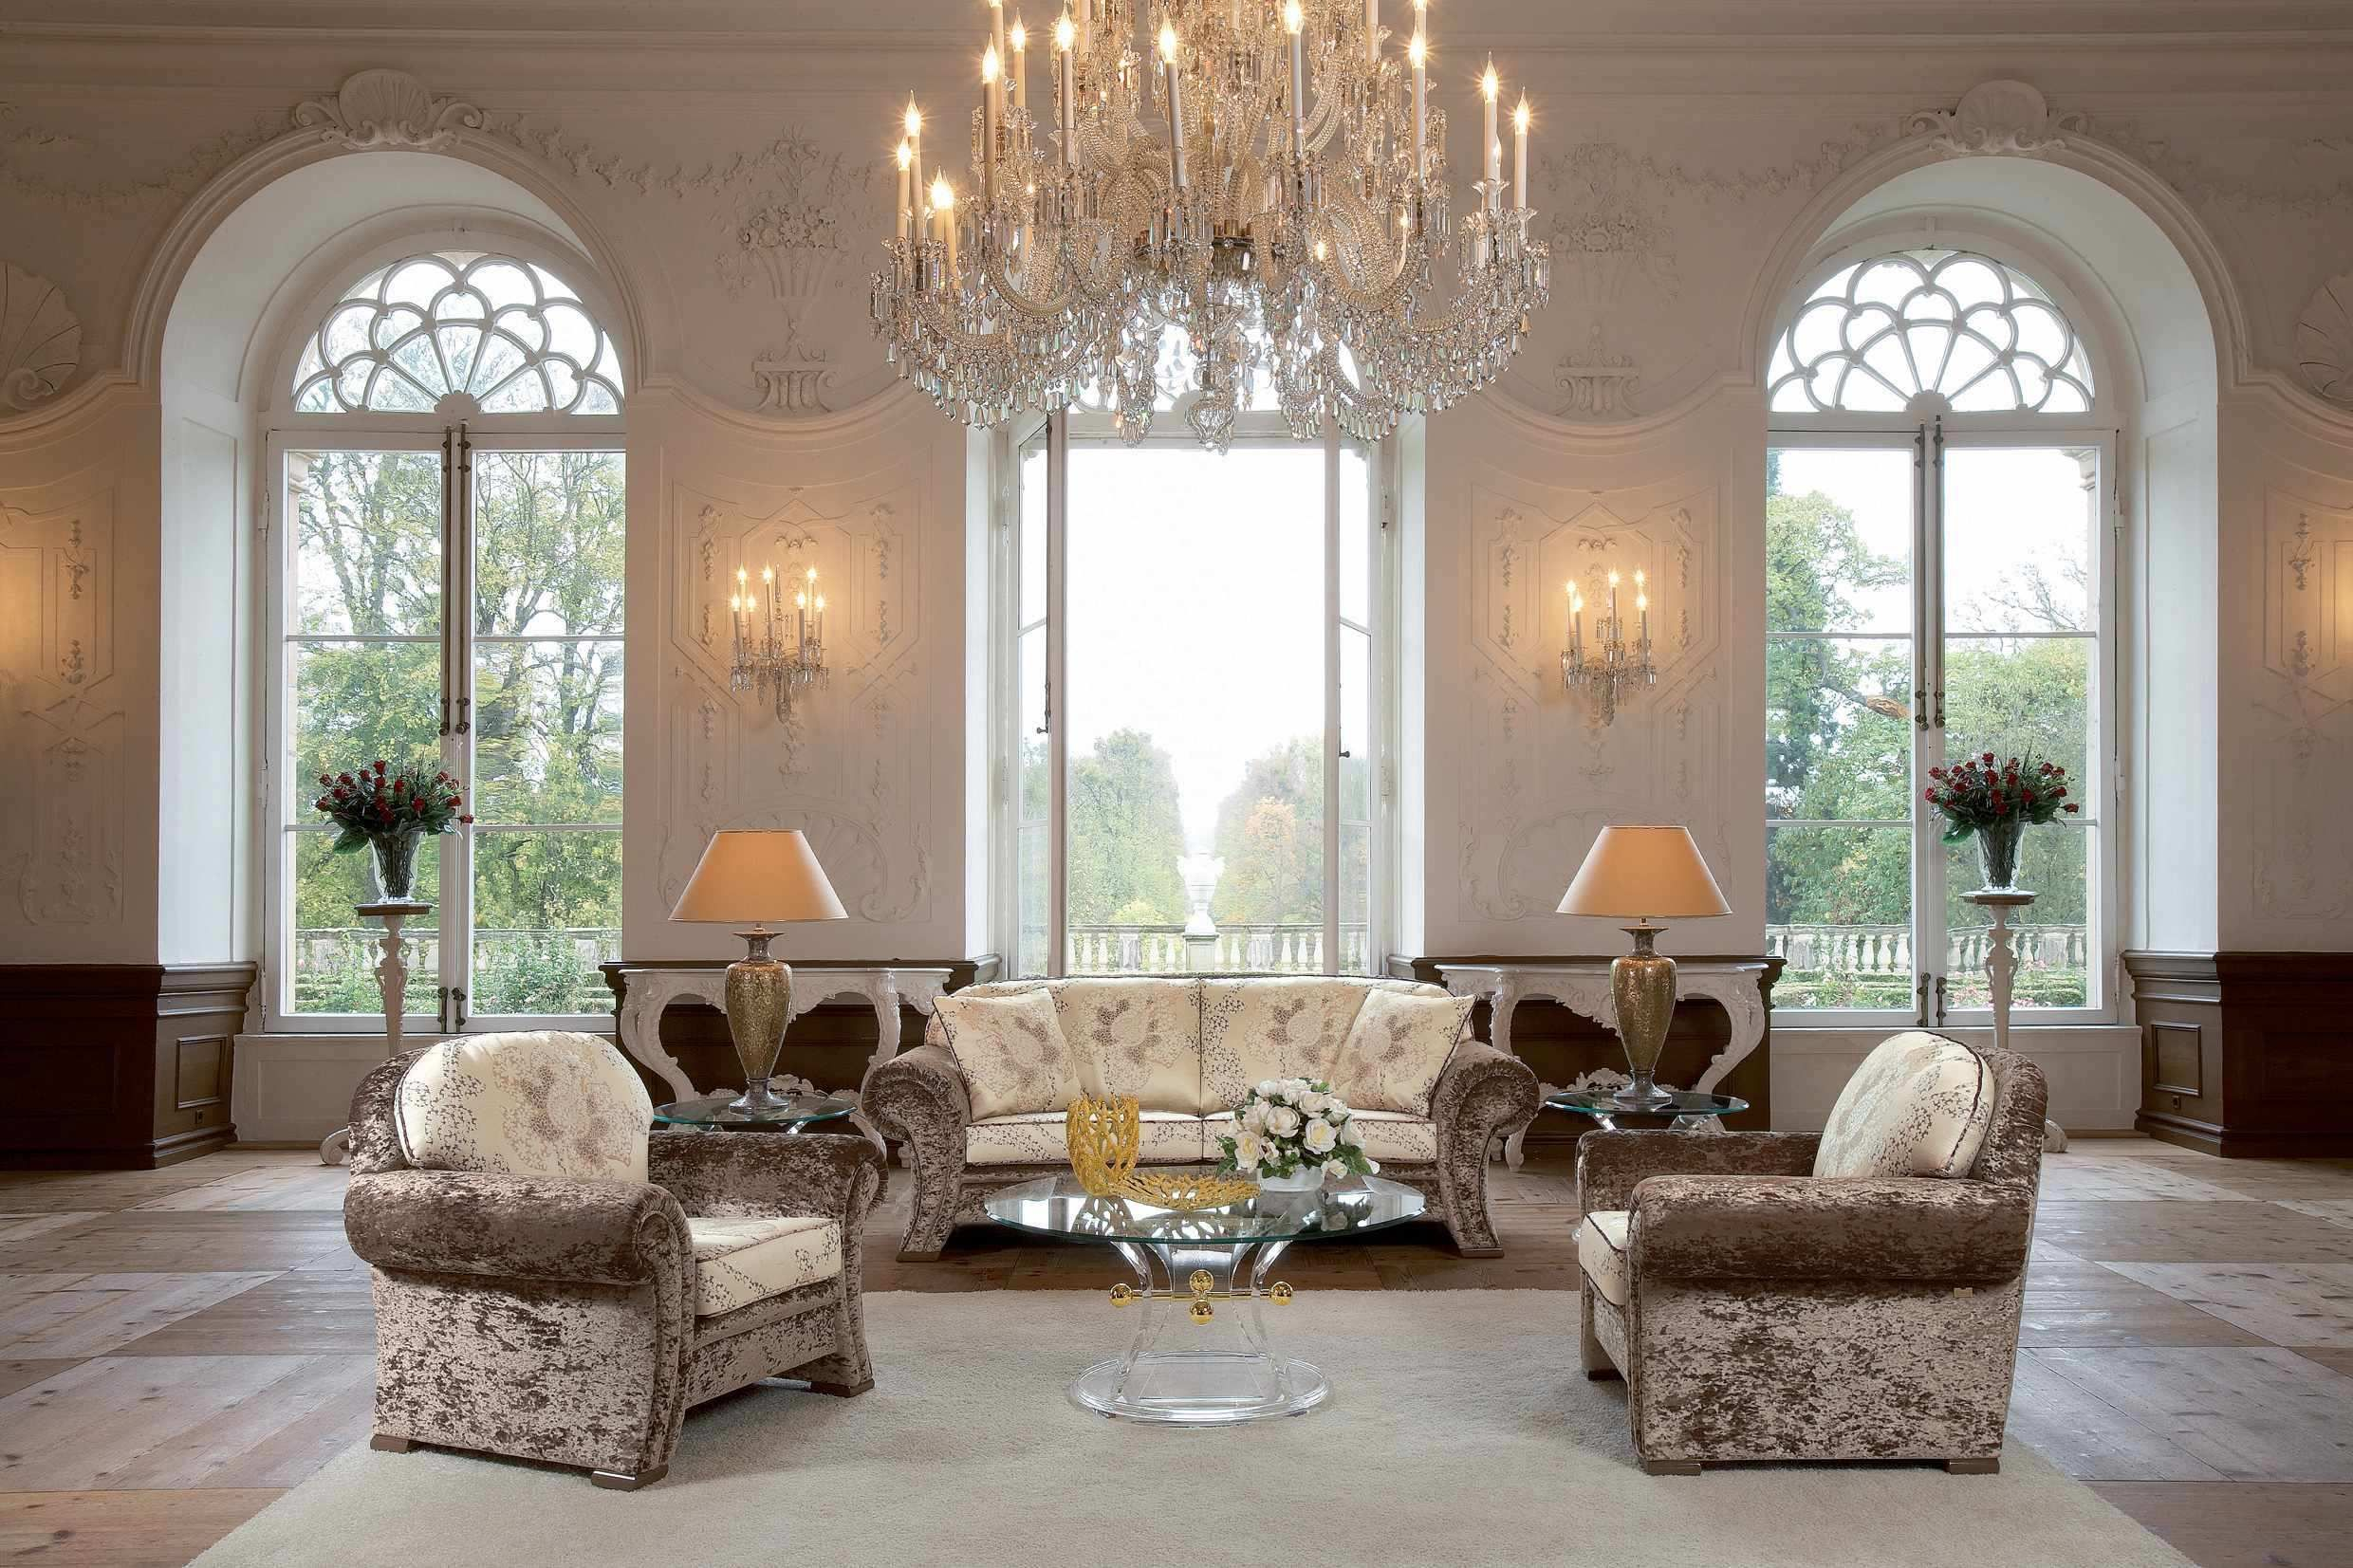 Most Beautiful Living Room Home Design Ideas54 Stunning And Contemporary  Victorian Decorating Ideas